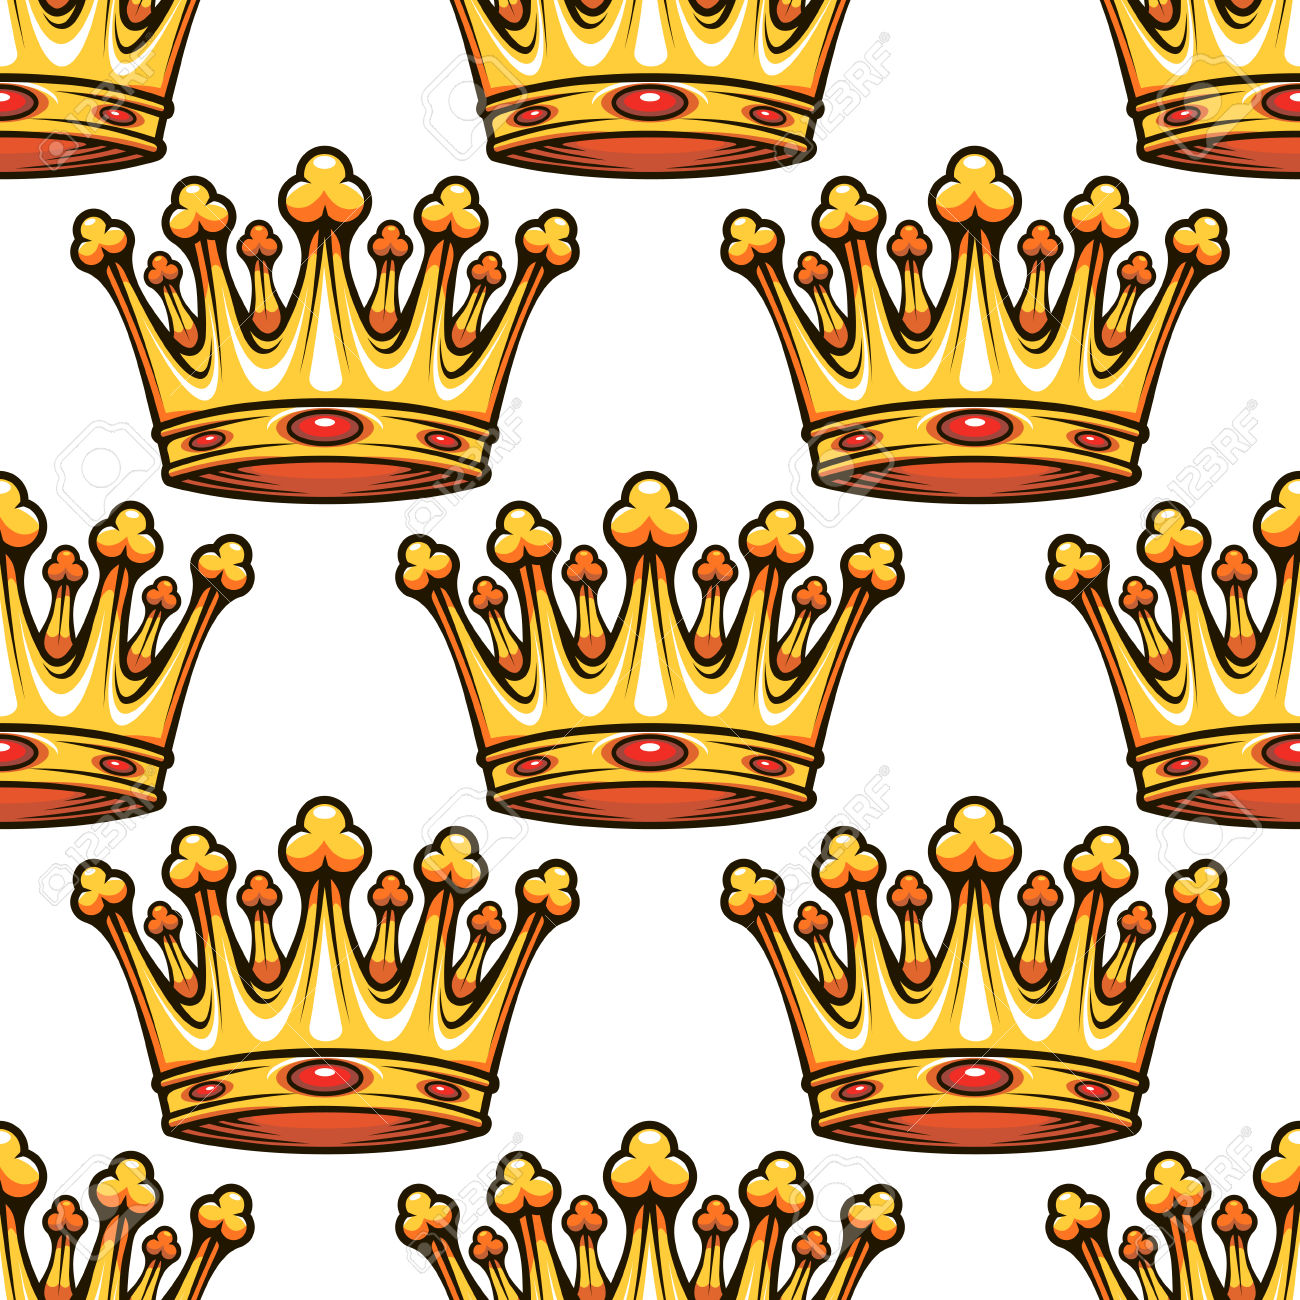 1300x1300 Crown Clipart Wallpaper